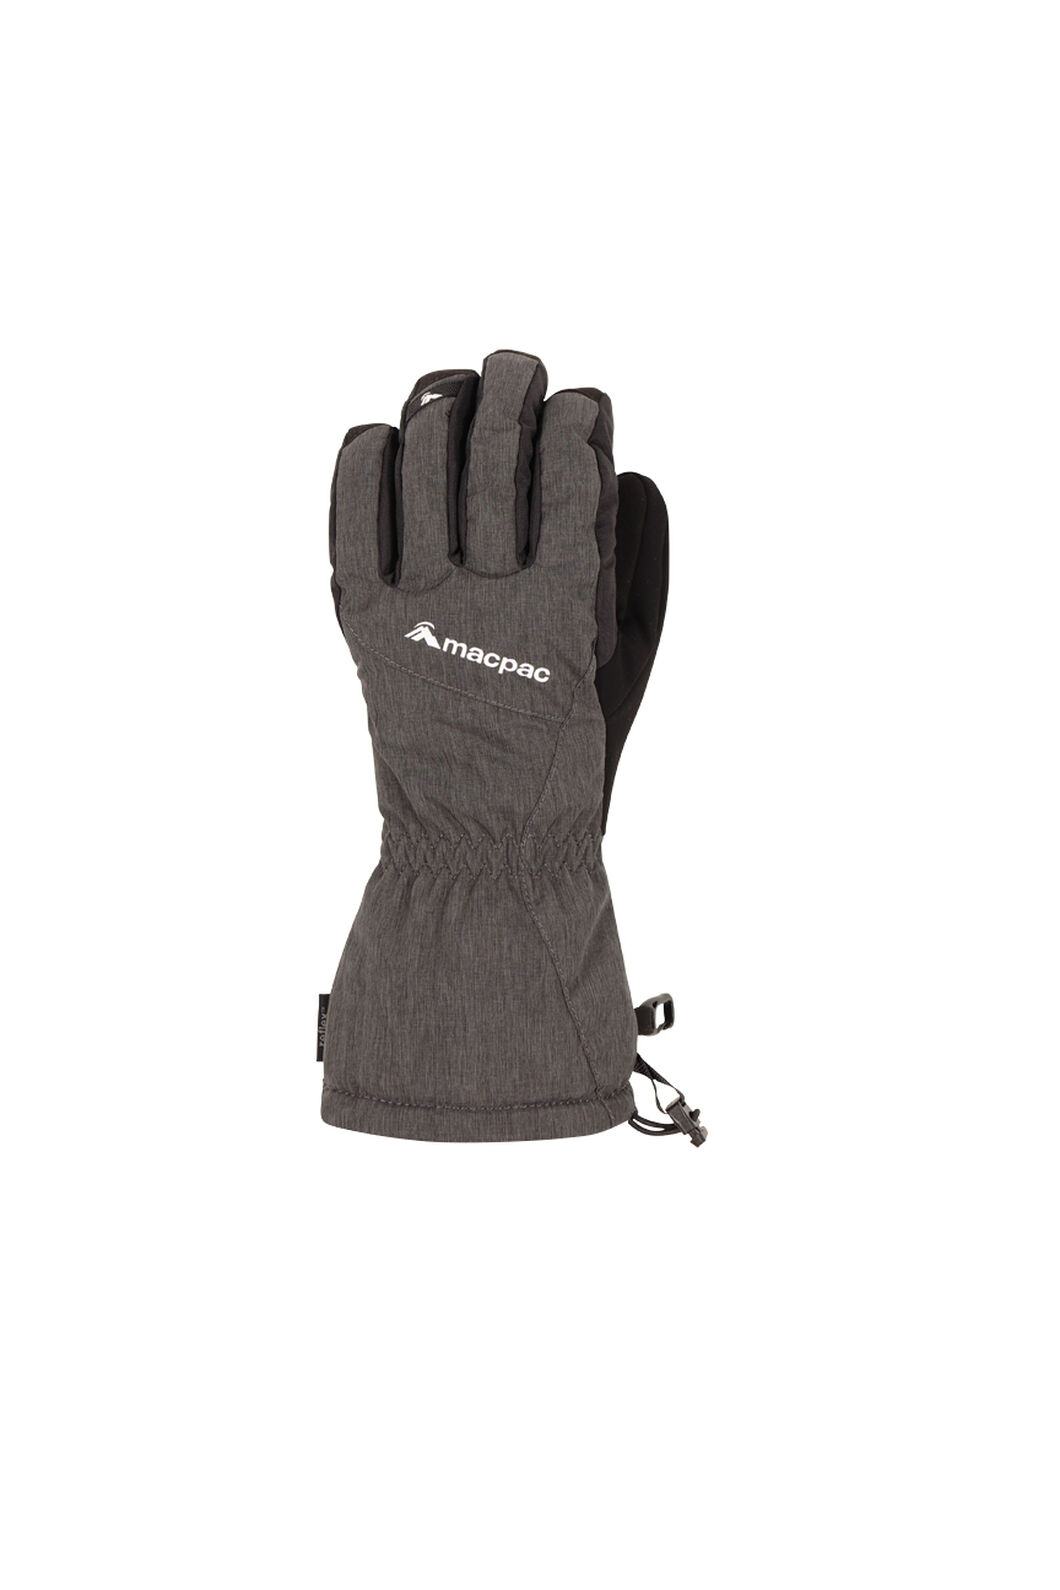 Macpac Carve Ski Gloves, Black, hi-res